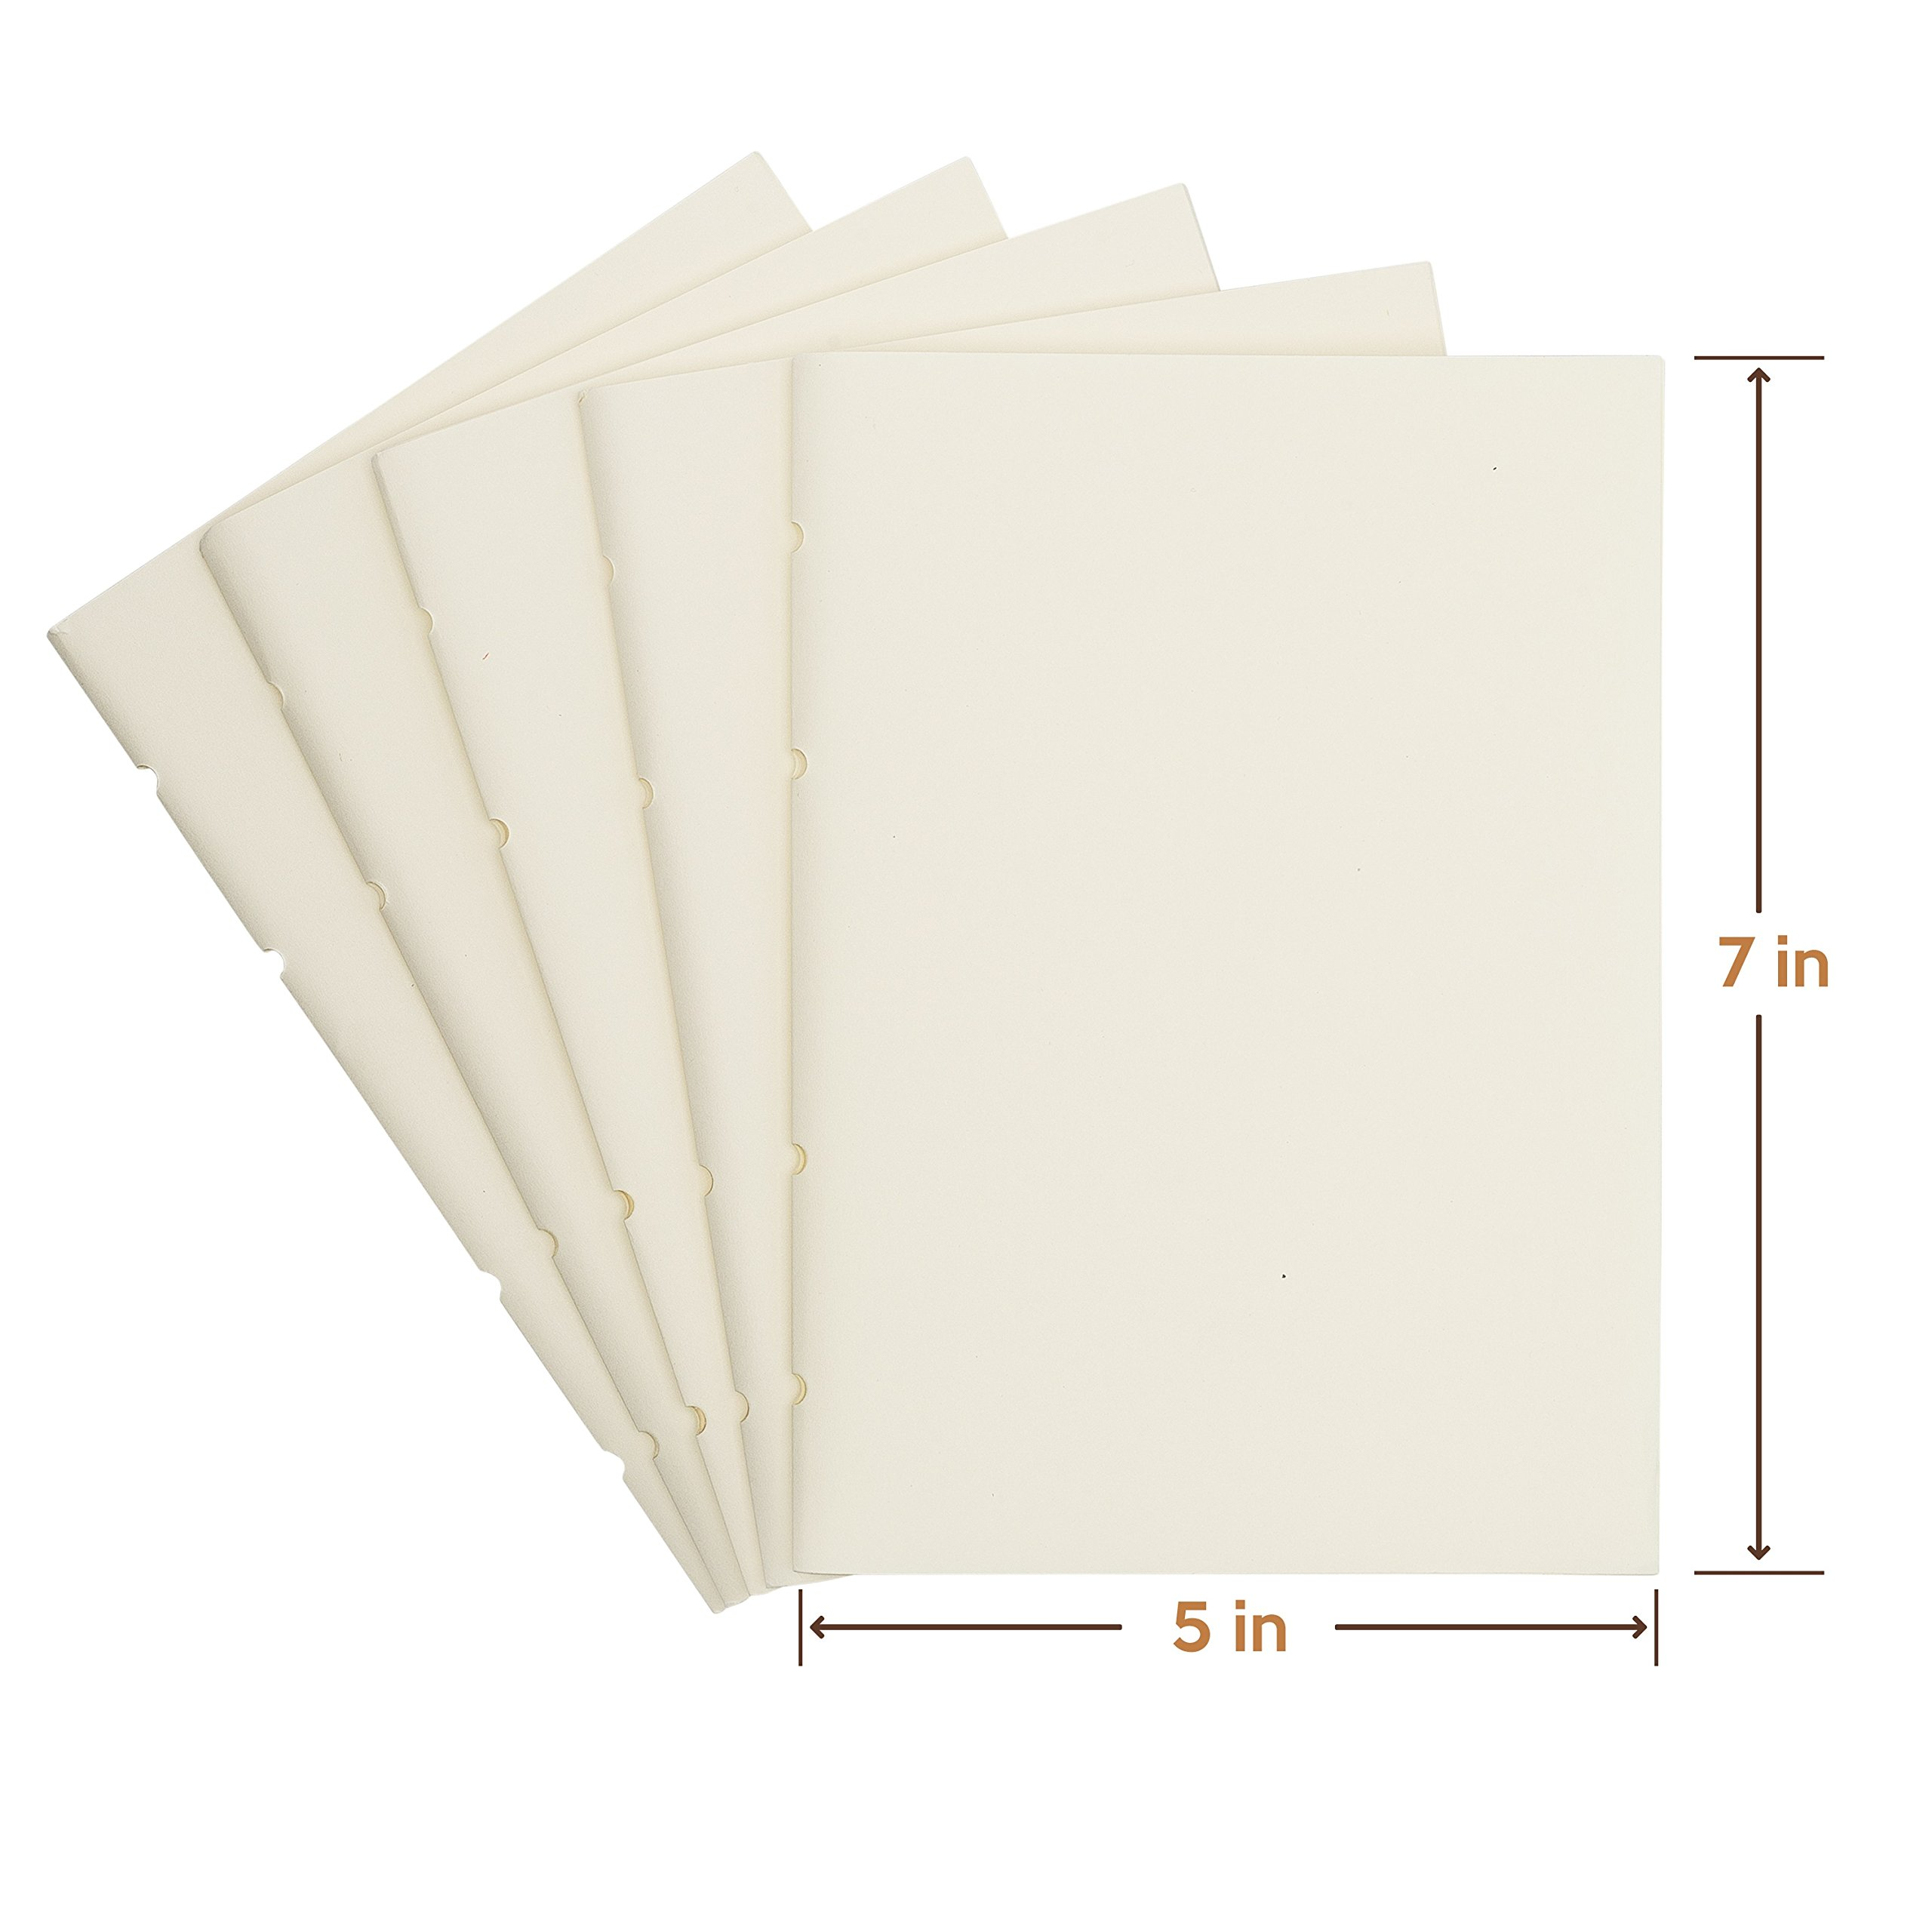 UnLined Blank Notebook Paper- Jofelo Refillable Leather Journal Paper Refill Inserts 5 x 7 inch 80gsm